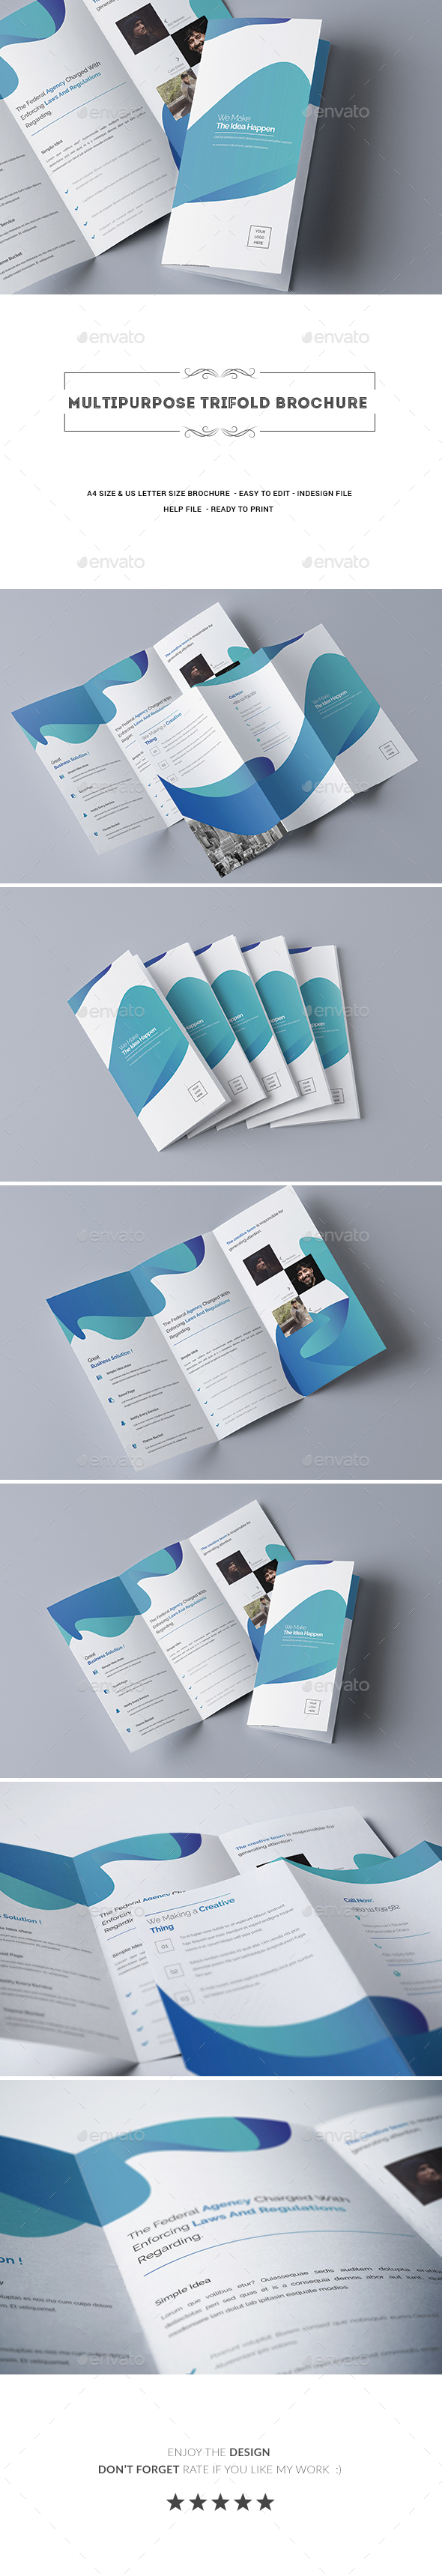 Multipurpose Trifold Brochure - Corporate Brochures